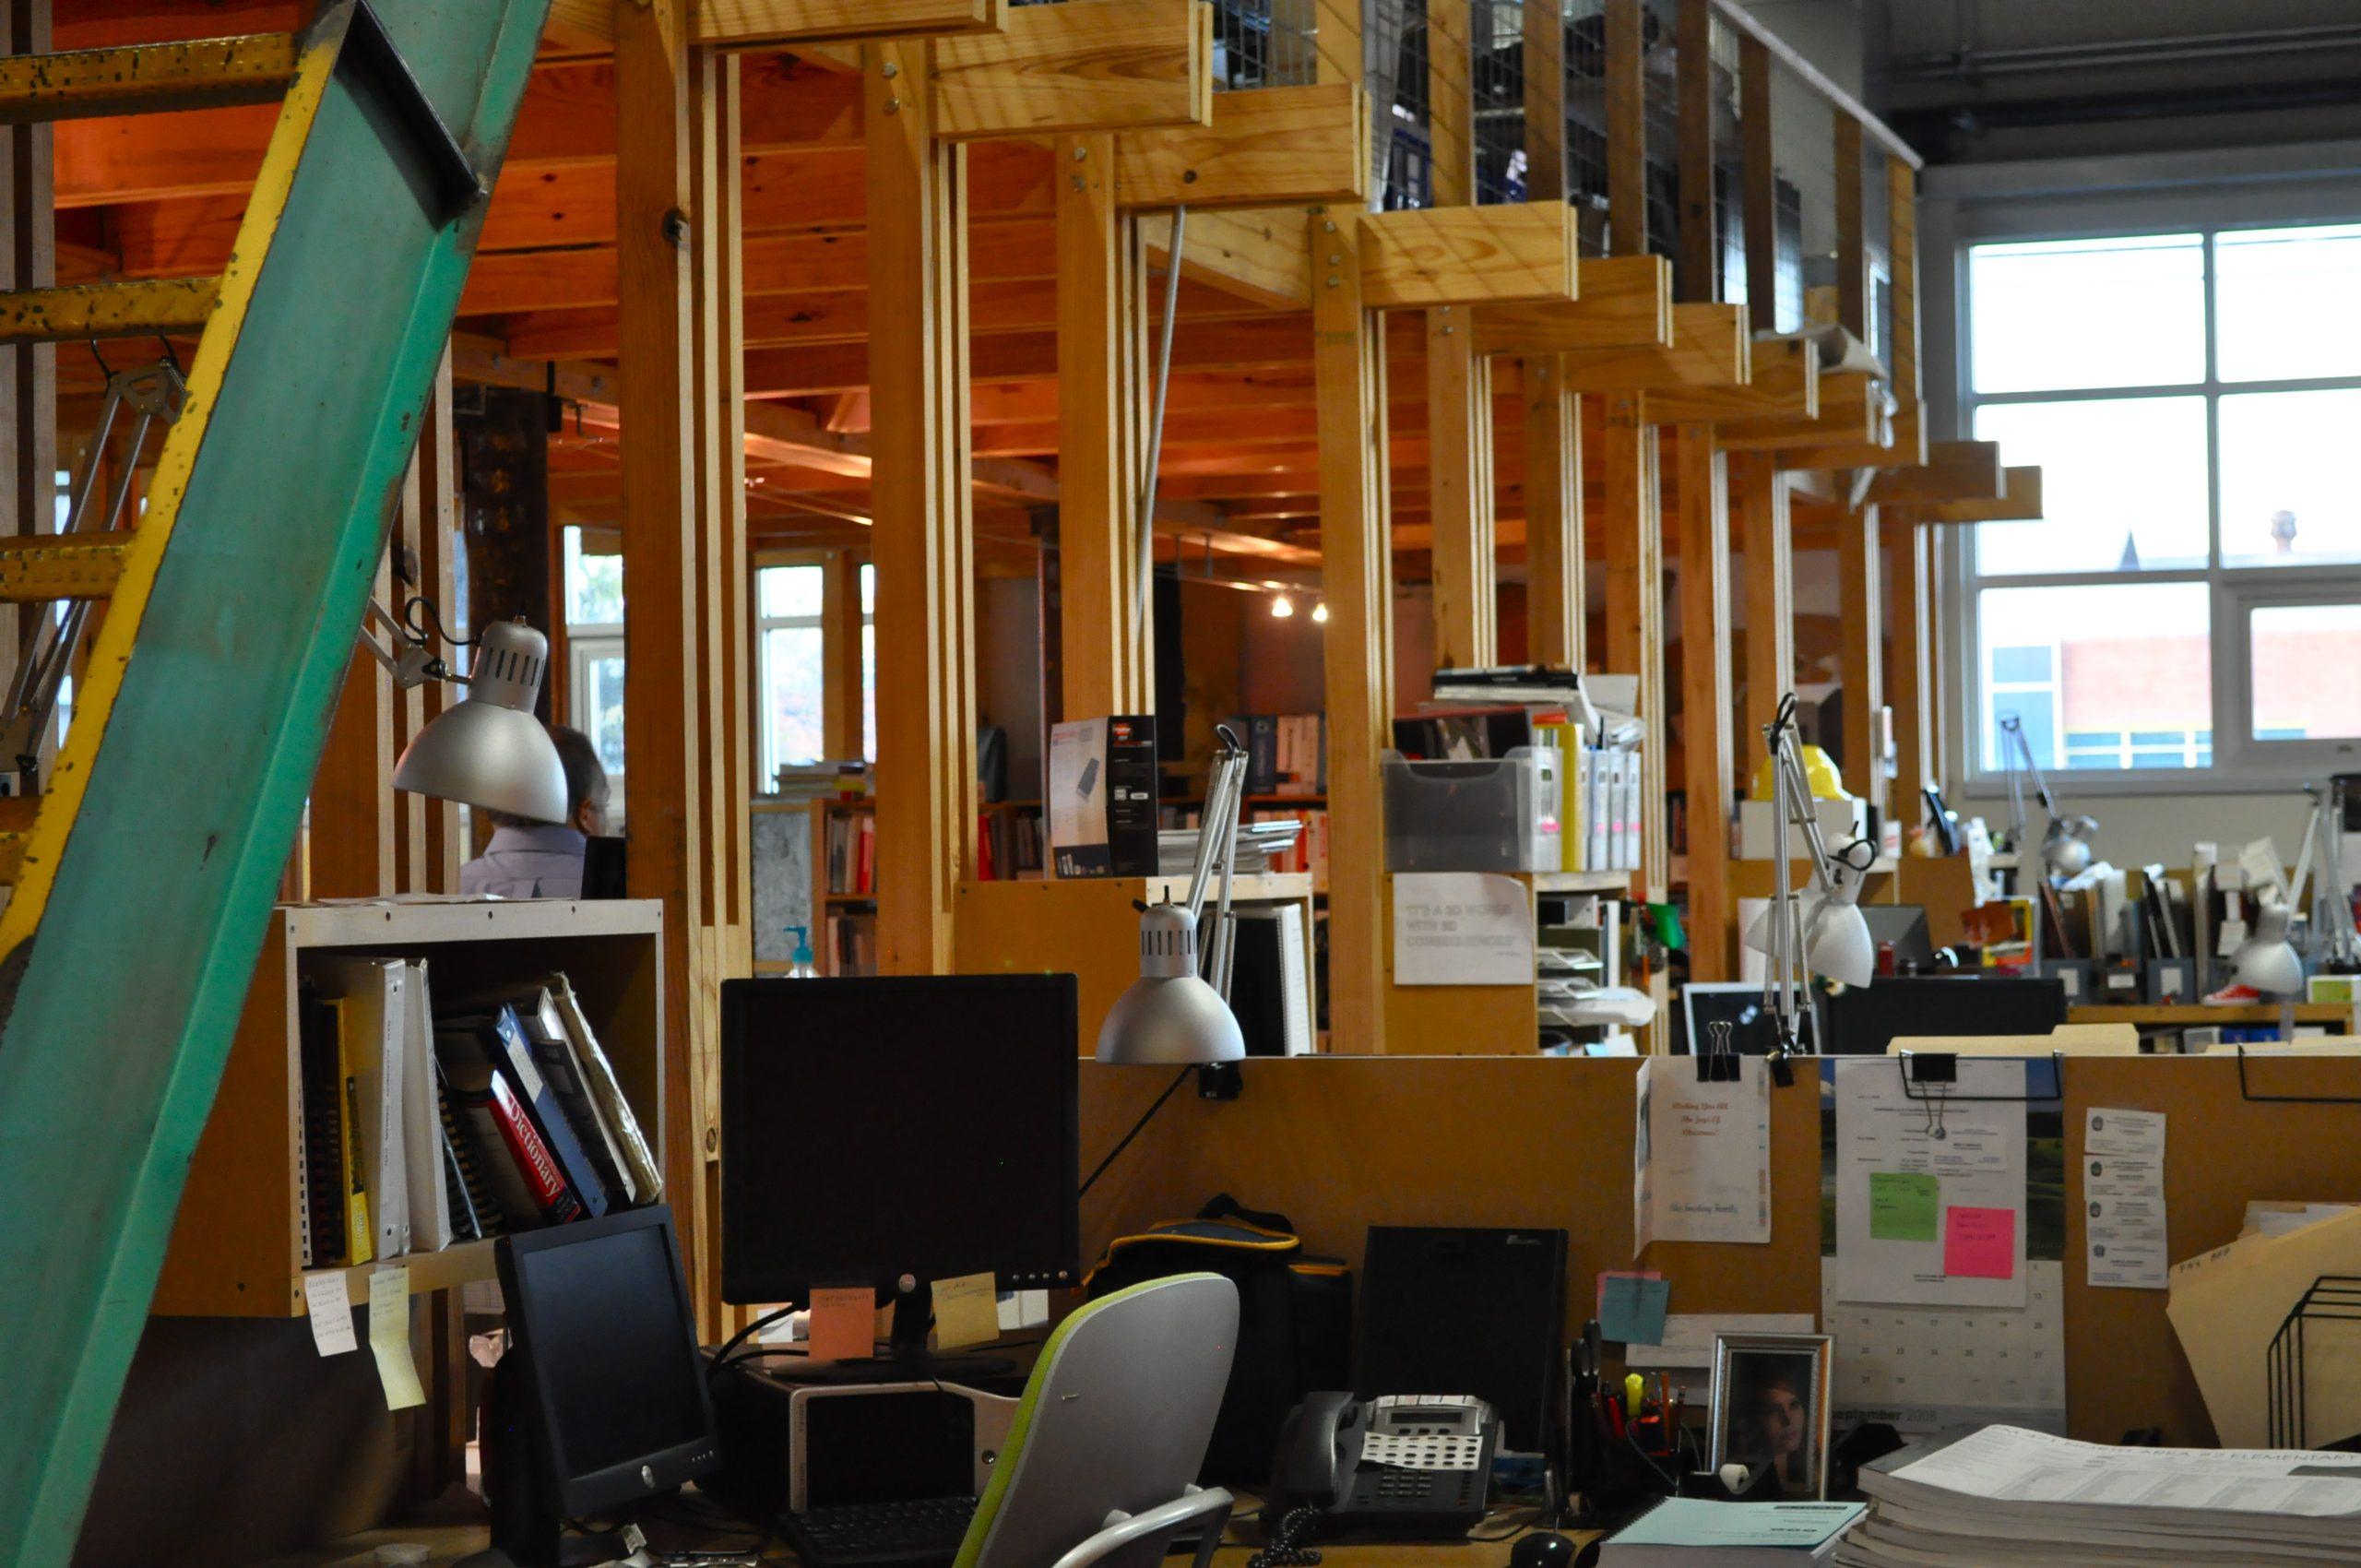 OCO Architects office space. Photo by Iris Dimmick.